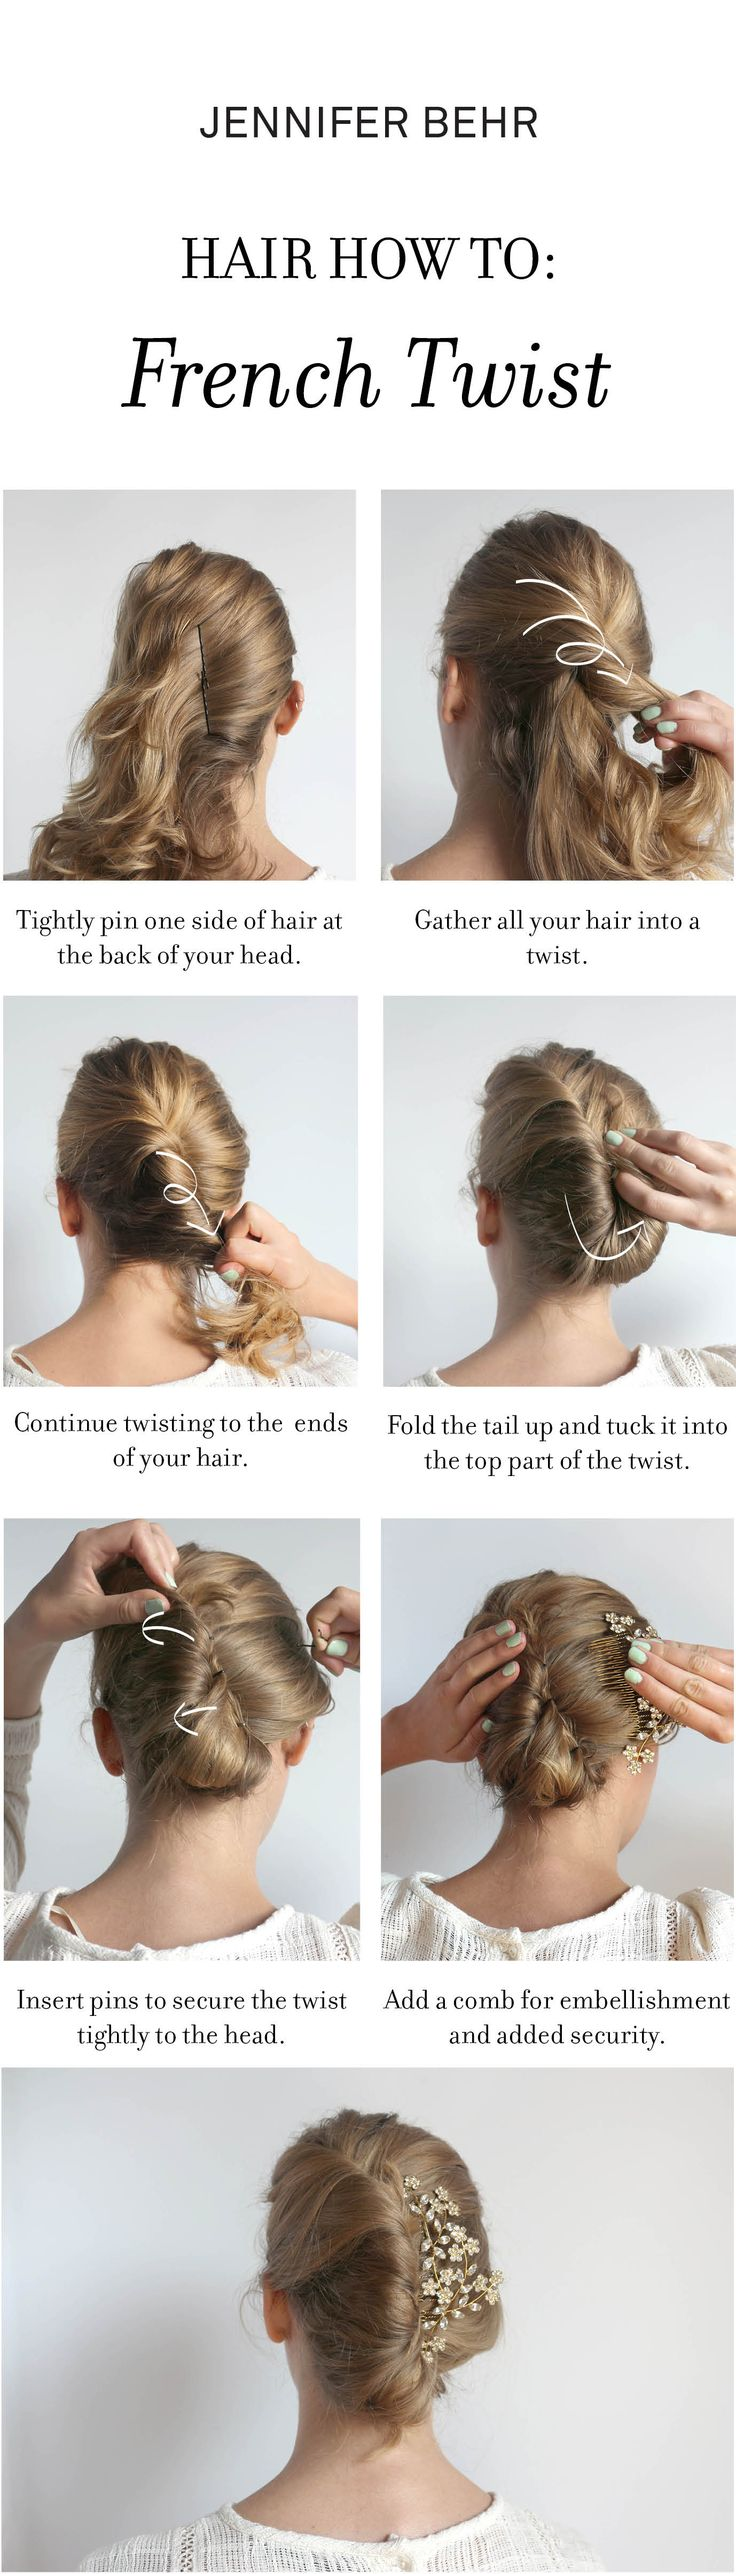 French Twist Hair Style by wearticles.com